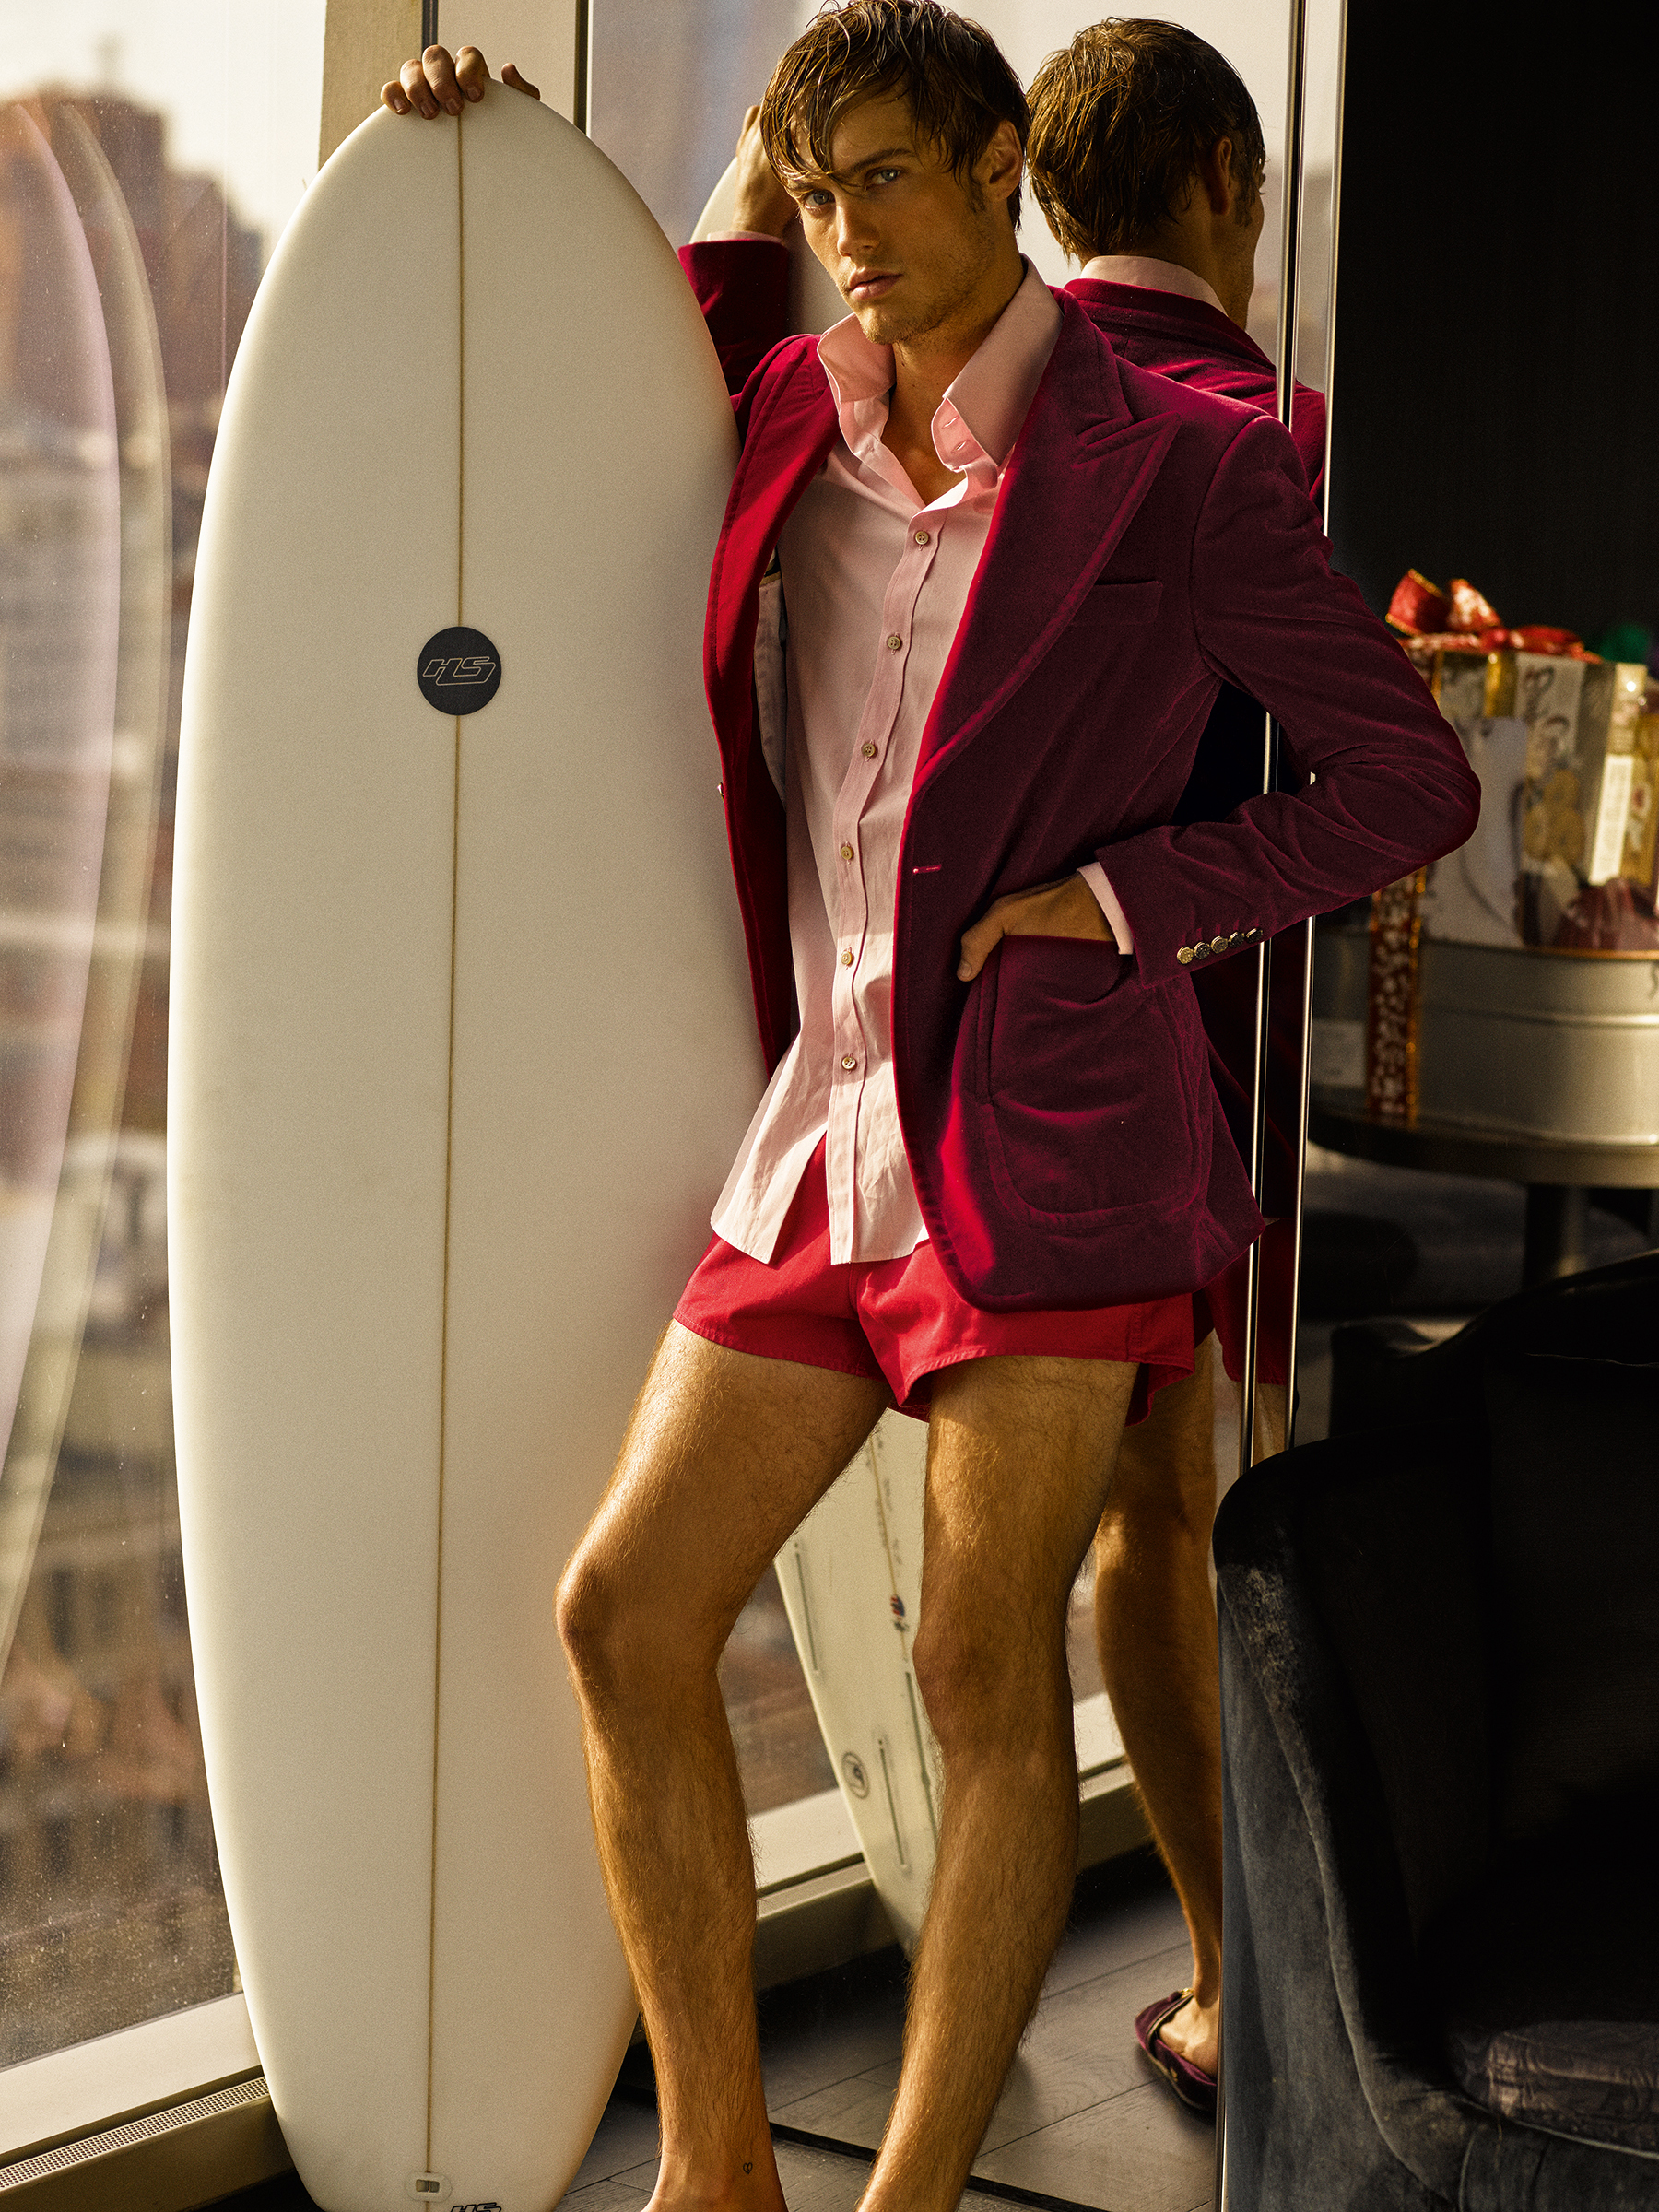 3dfb34fde3 Surf's up! How men's tailoring took to the waves   How To Spend It